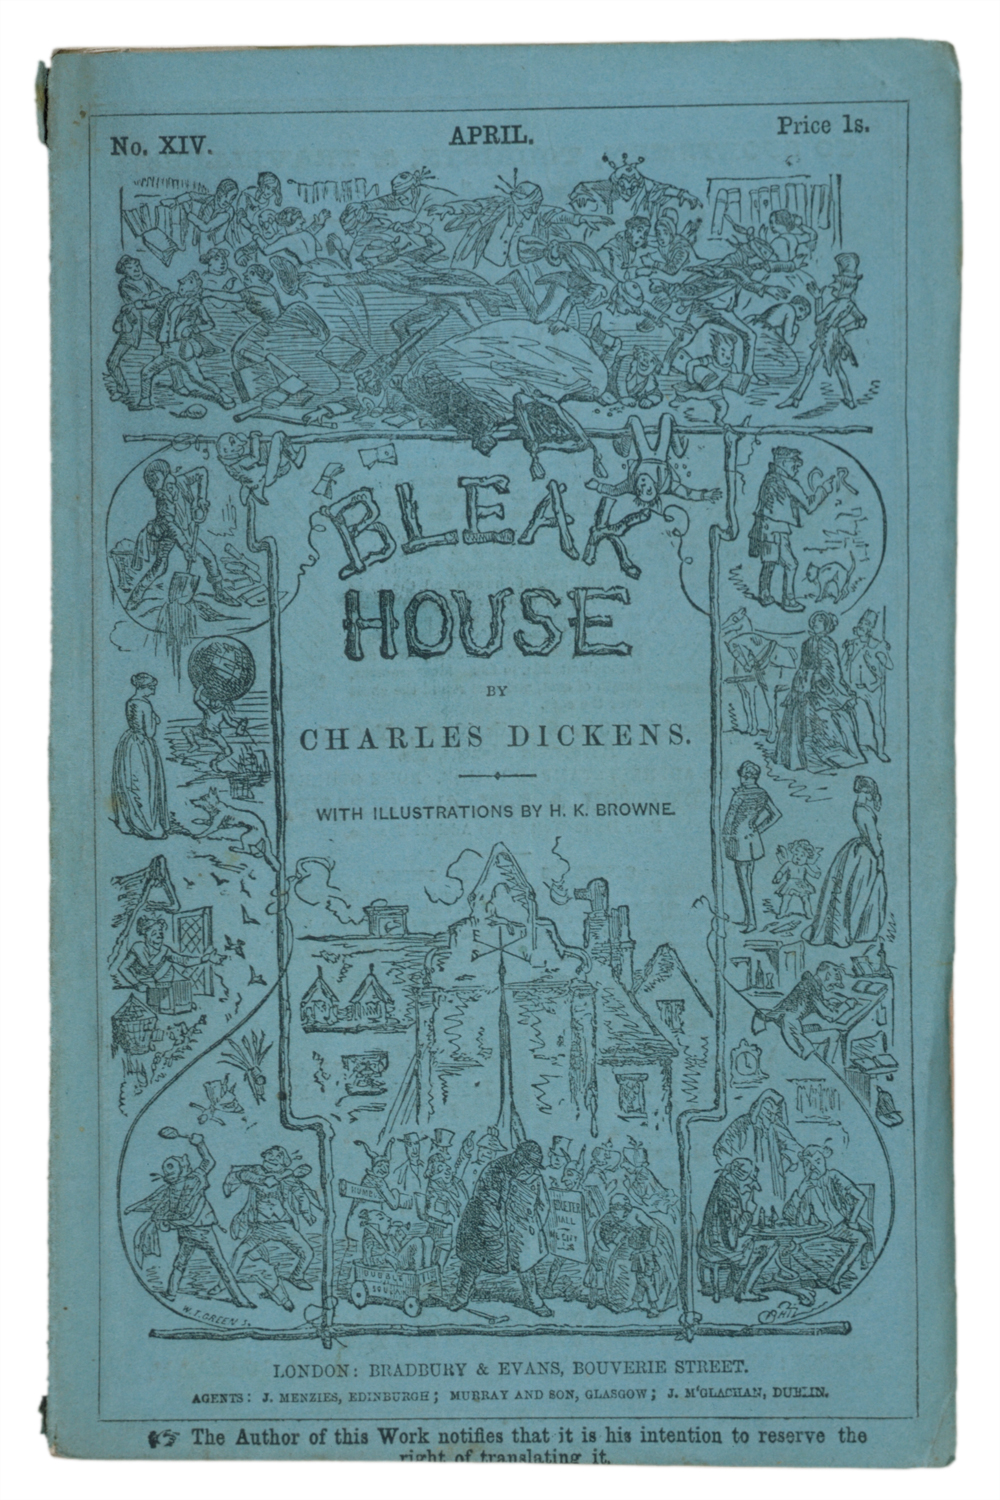 critical essays on charles dickens Browse and read critical essays on charles dickens bleak house critical essays on charles dickens bleak house follow up what we will offer in this article about.